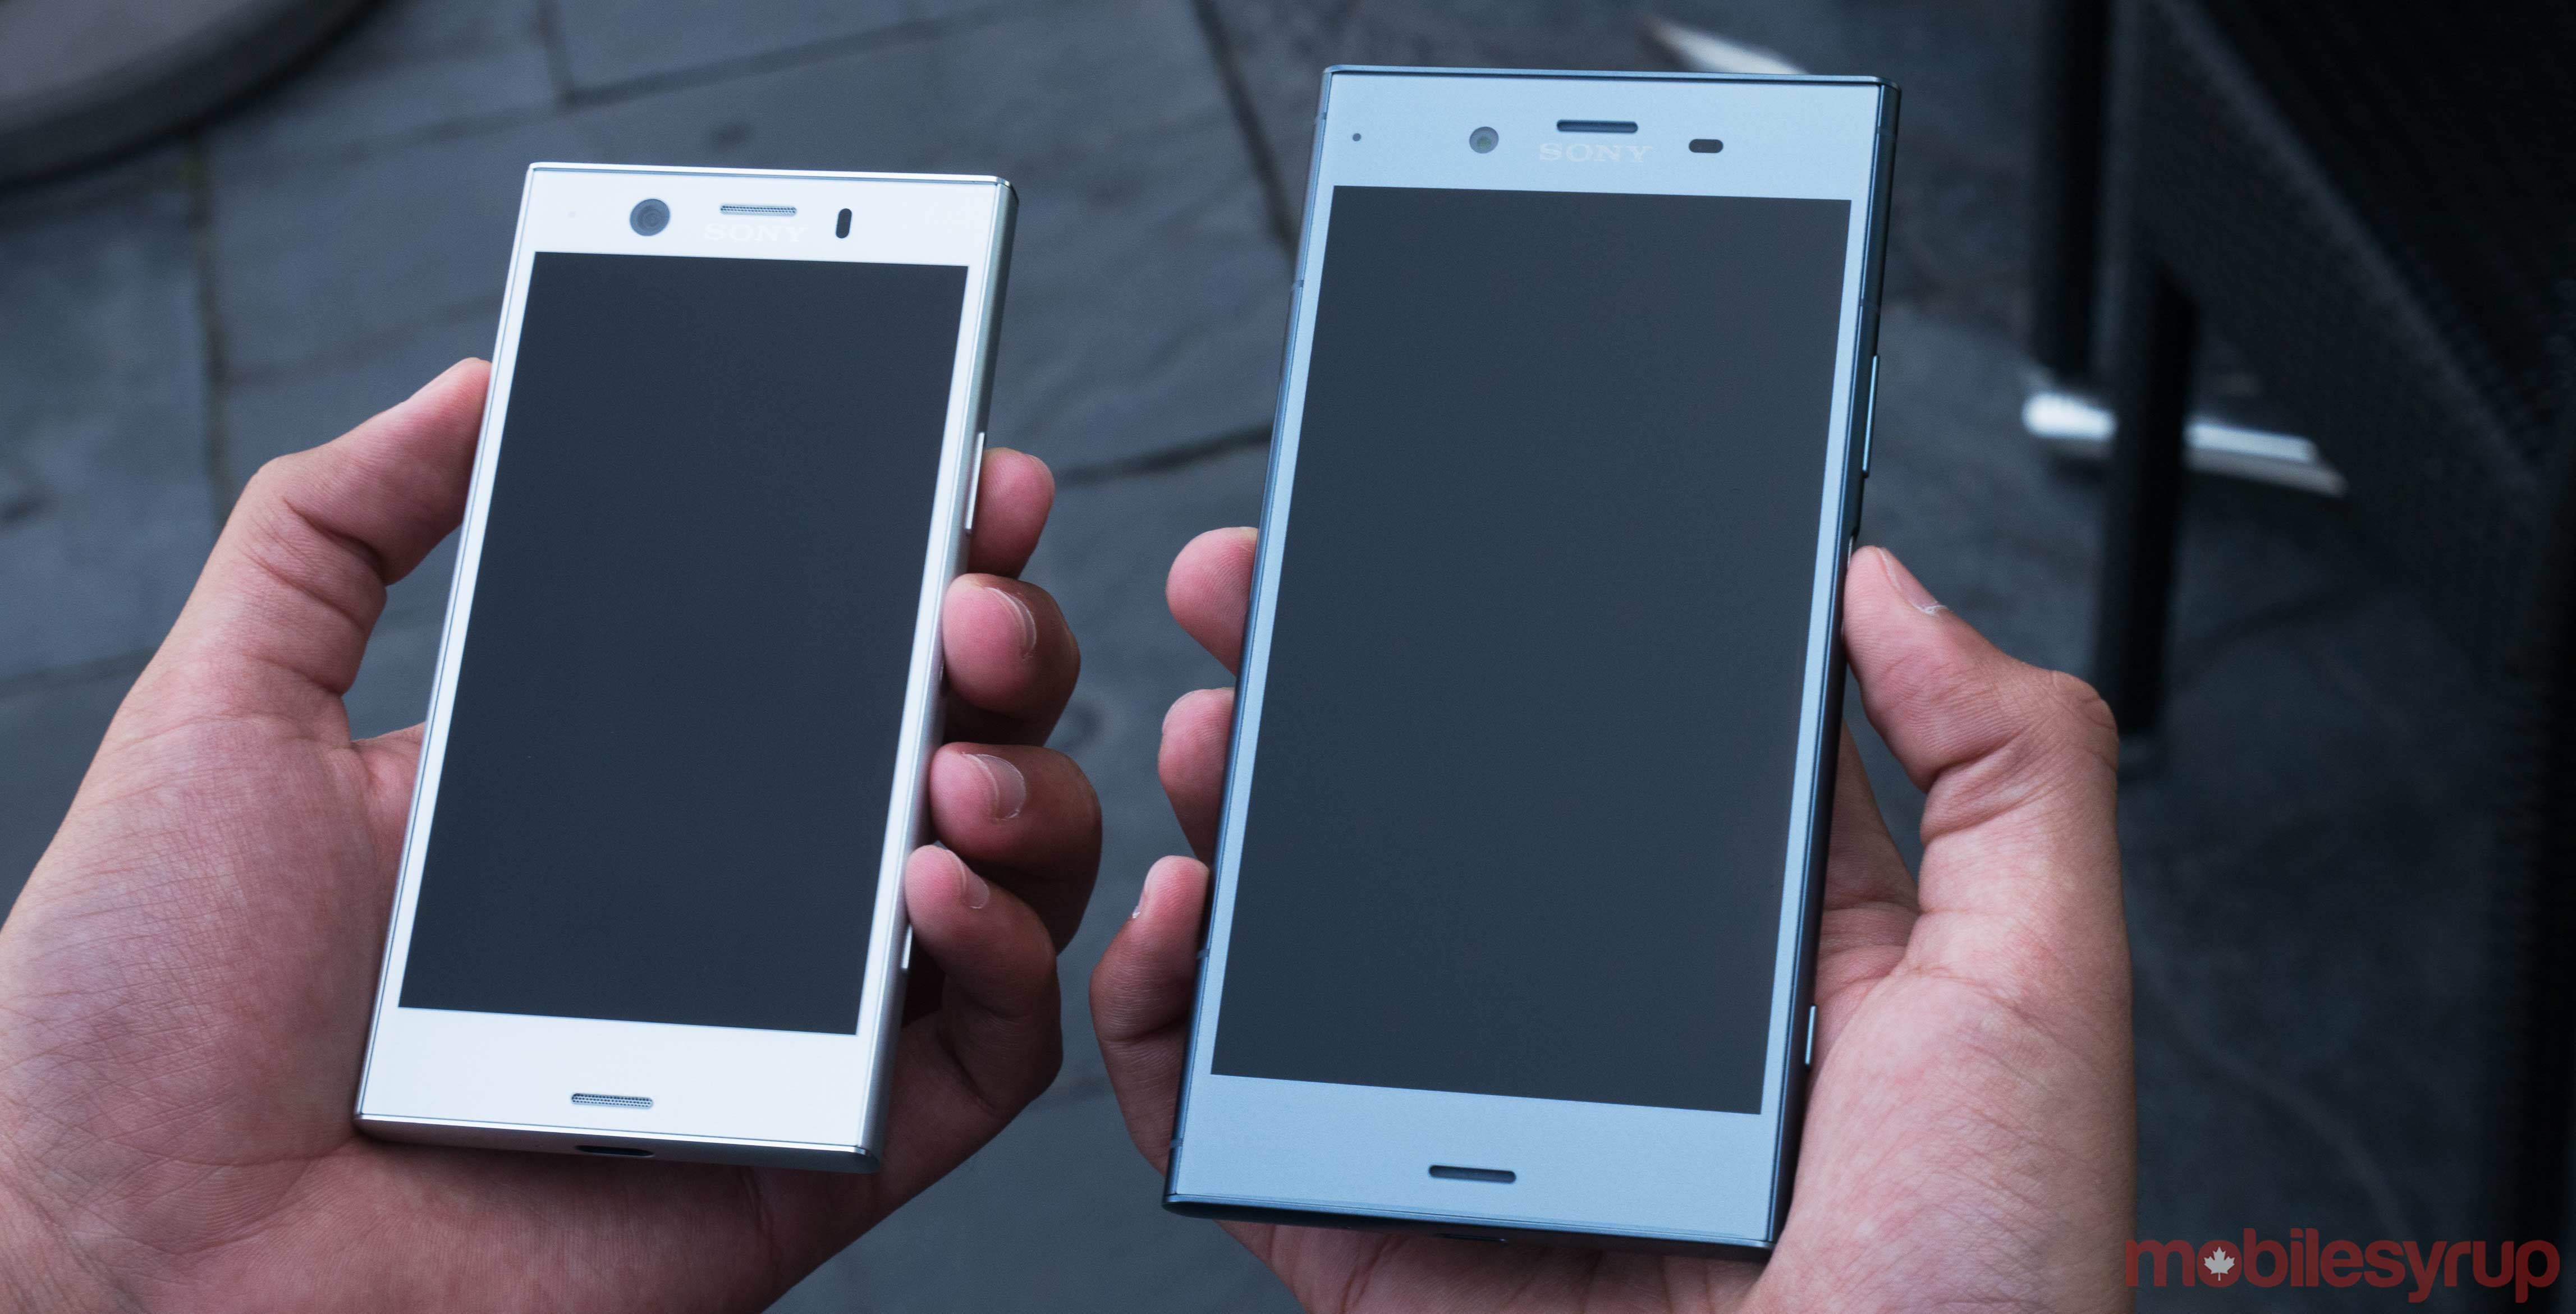 Sony Xz1 Compact System Update Sony Xperia Xz1 And Xz1 Compact Hands On That Same Sony Style